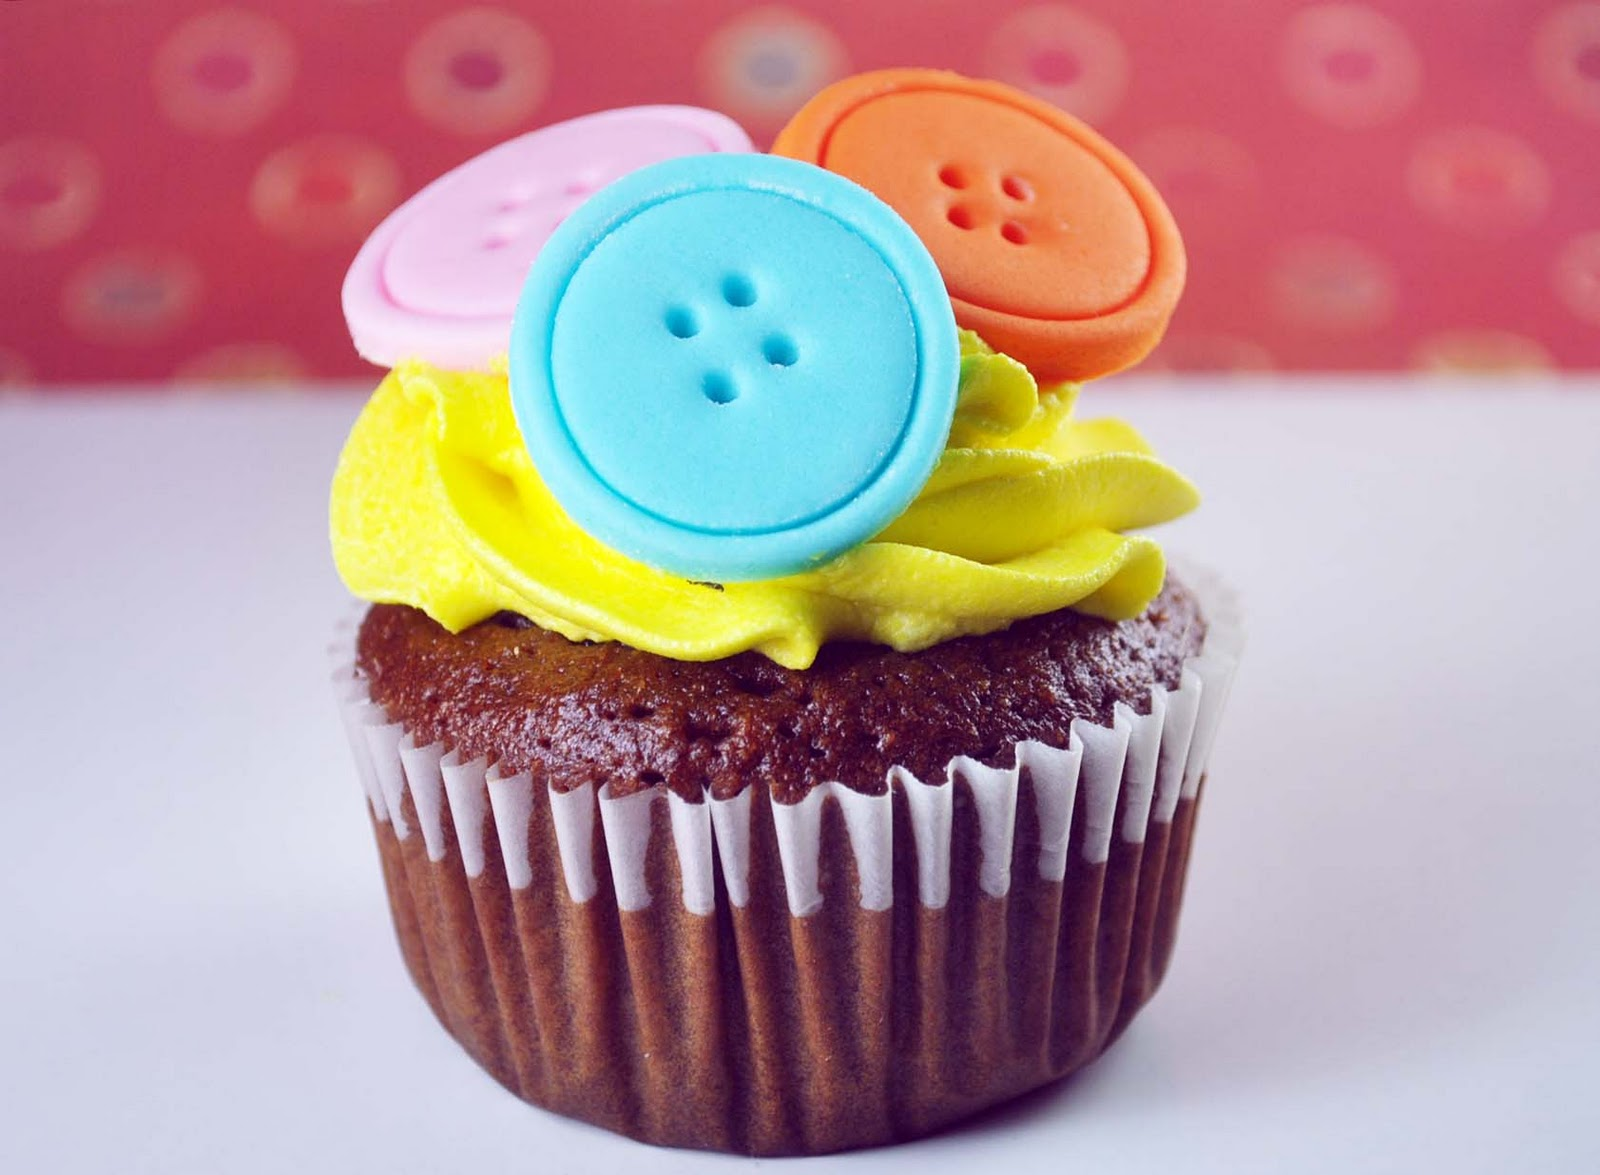 Cupcake Decorating Ideas Using Fondant : How to Make Cute as a Button Cupcake Toppers - Bake Happy